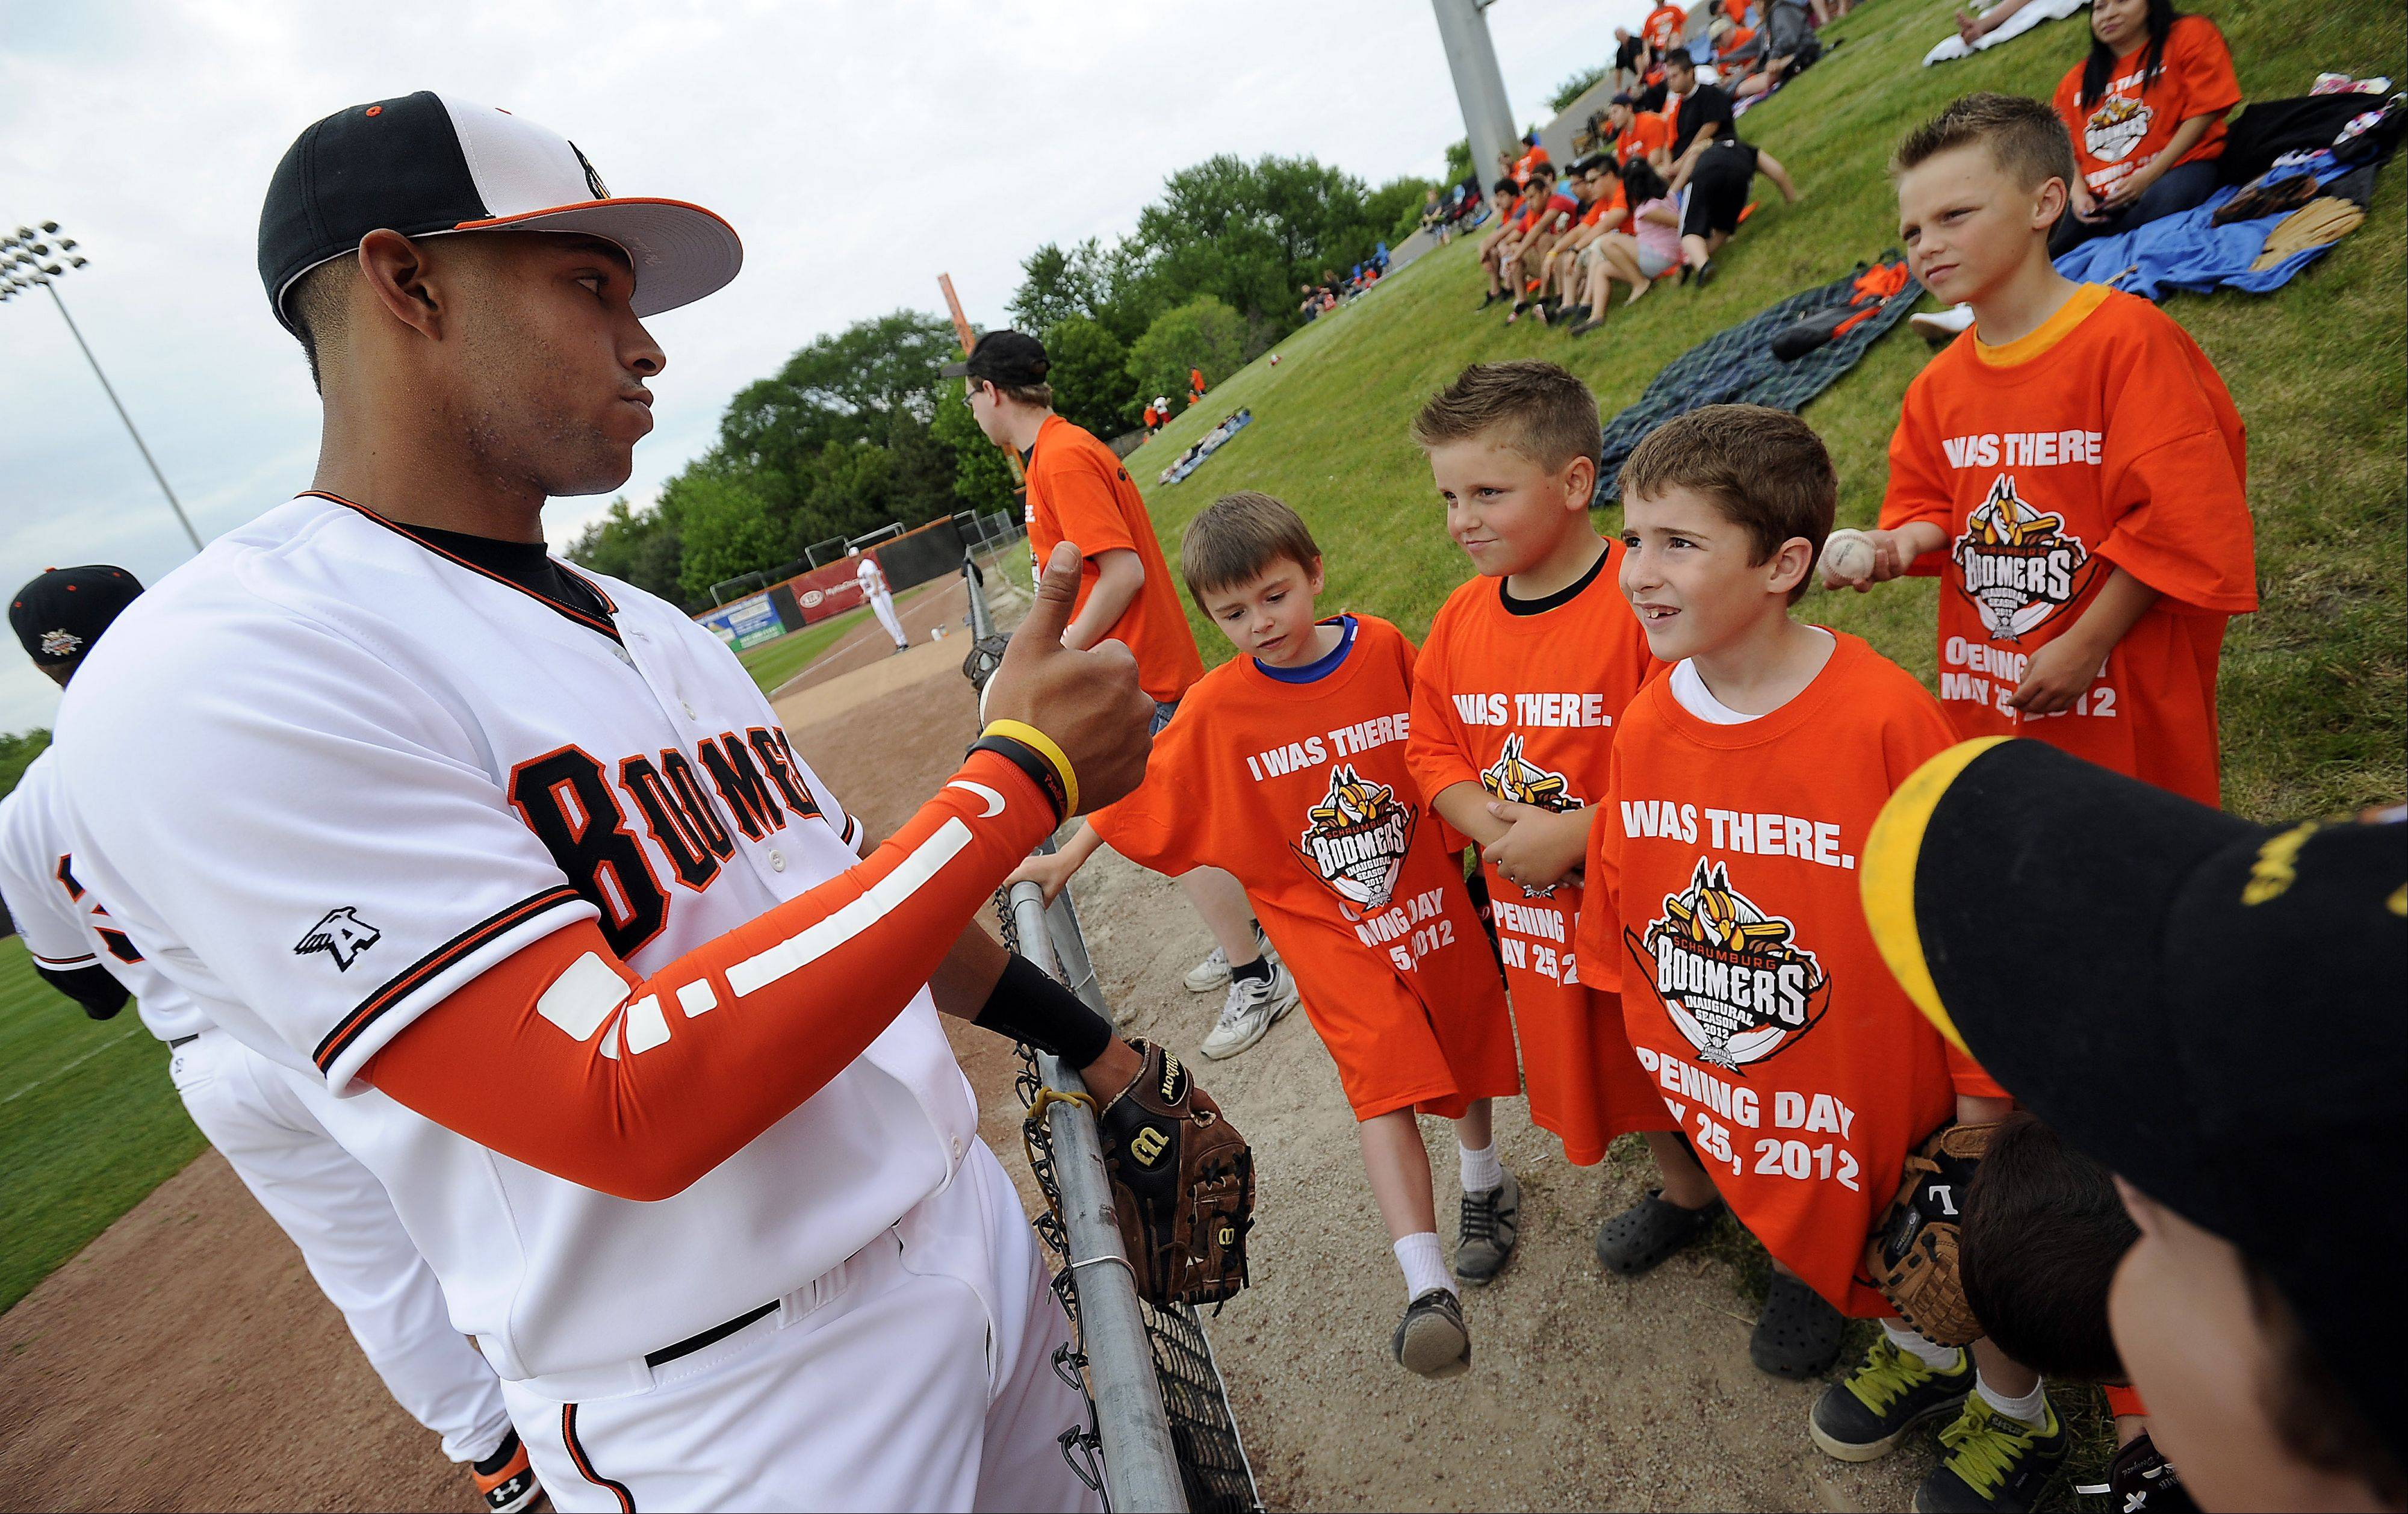 Boomers player Brandon Hairston gives a thumbs up to his fans at Boomers Stadium in Schaumburg on Friday.